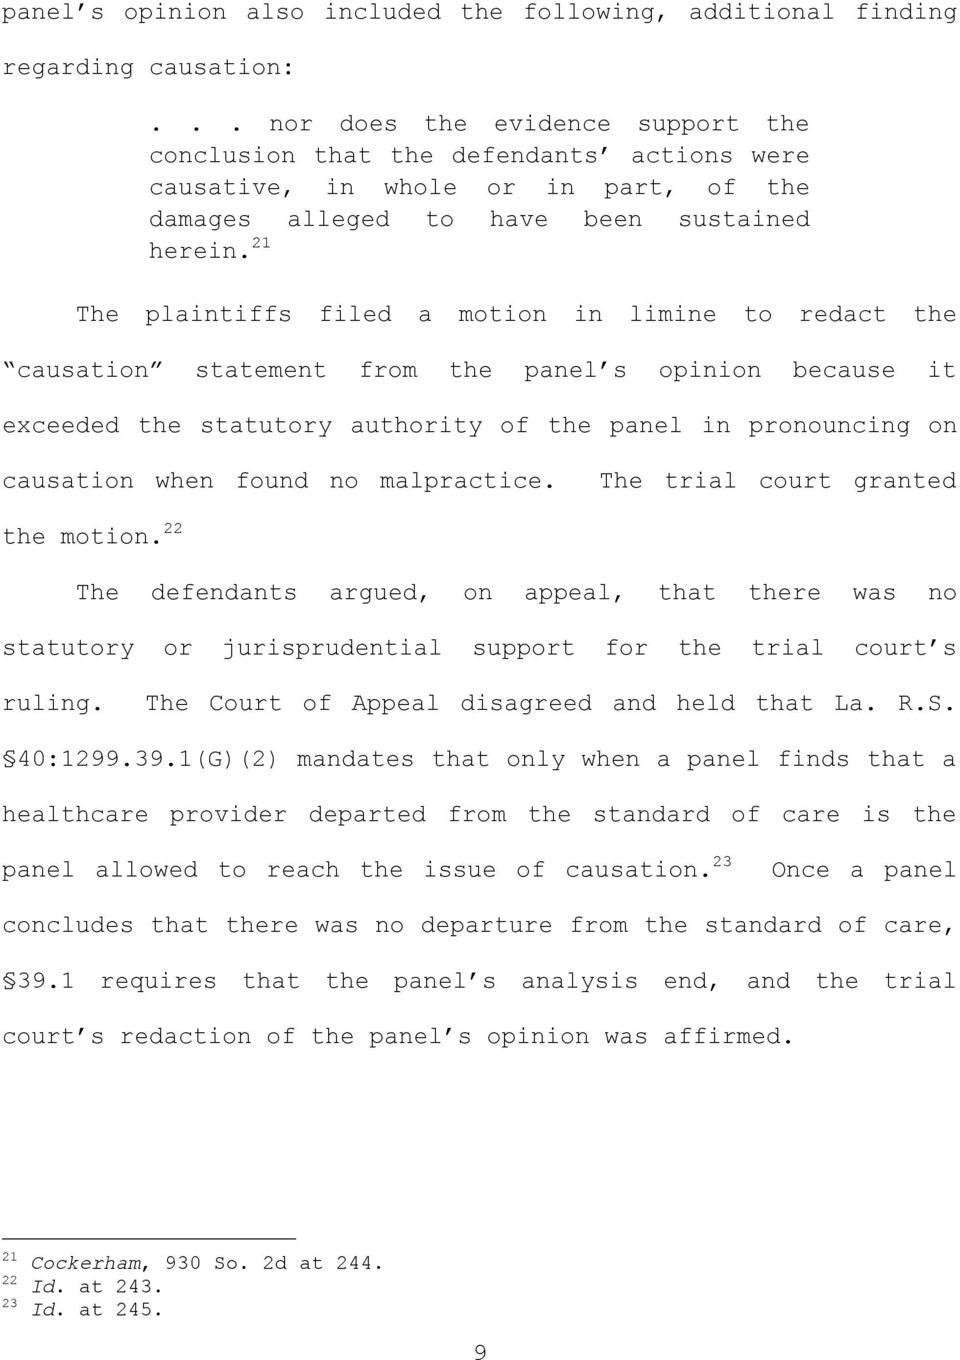 21 The plaintiffs filed a motion in limine to redact the causation statement from the panel s opinion because it exceeded the statutory authority of the panel in pronouncing on causation when found